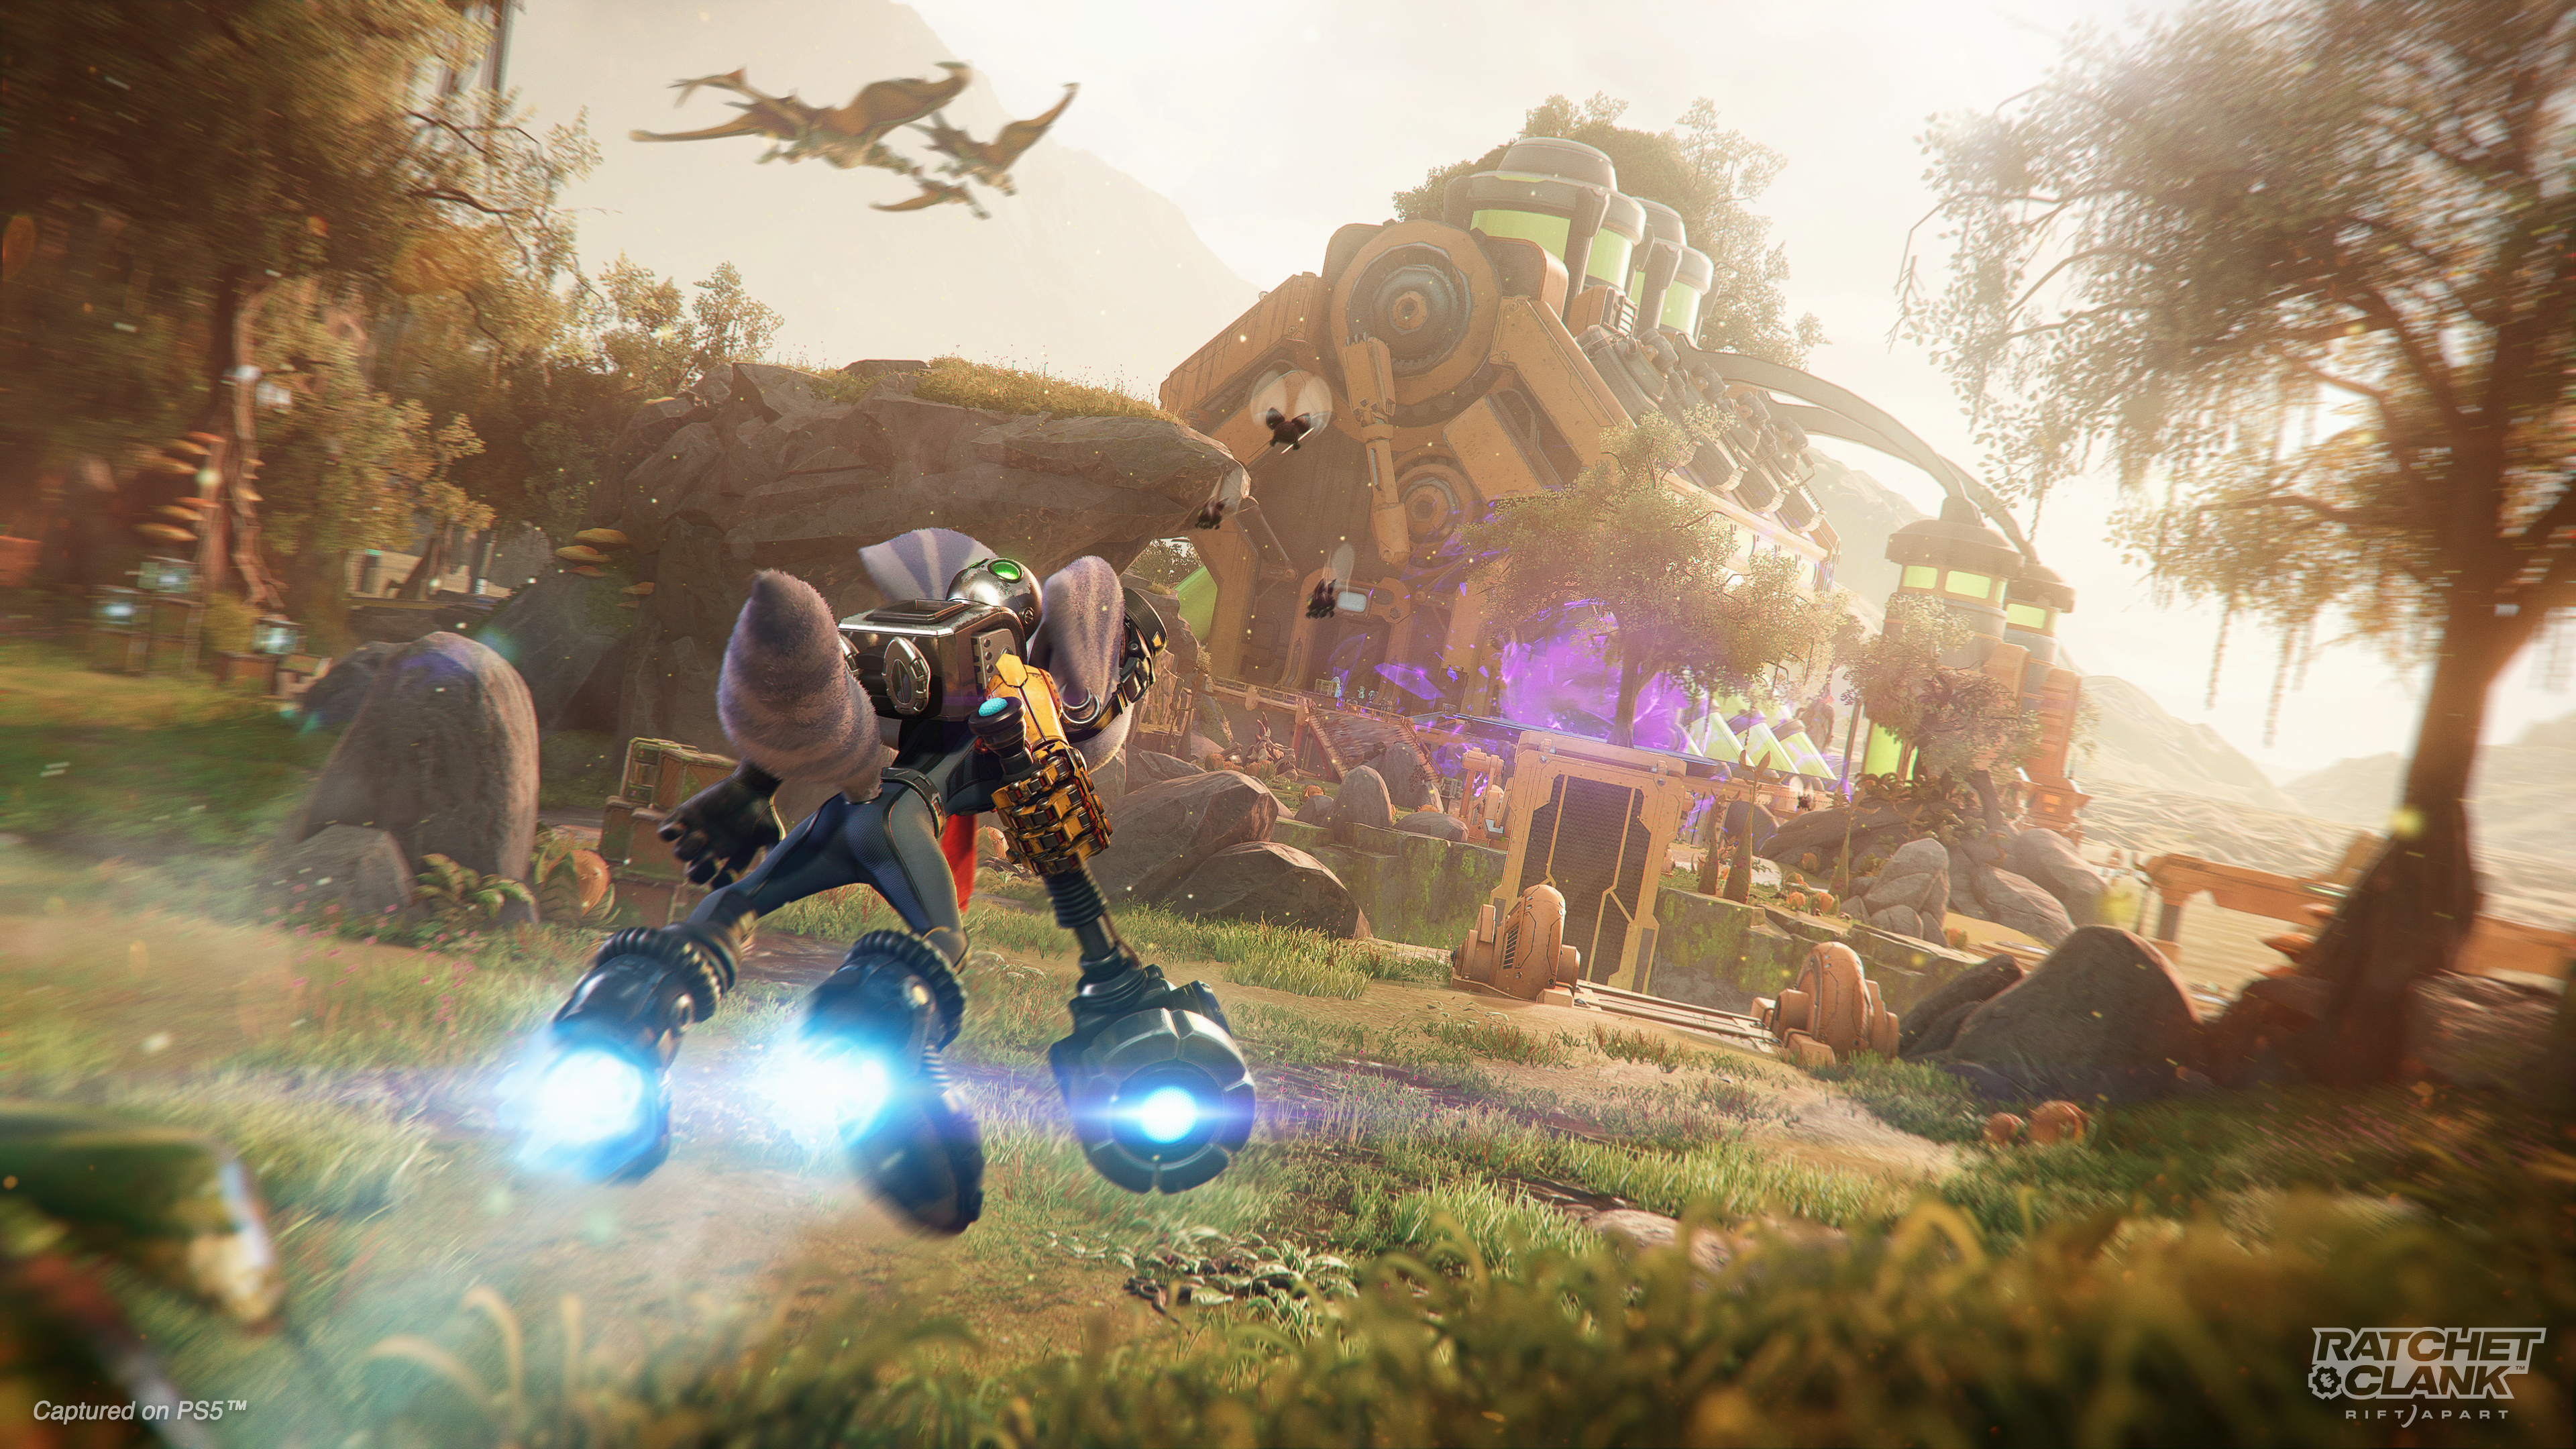 Rivet using Hoverboots in Ratchet & Clank: Rift Apart